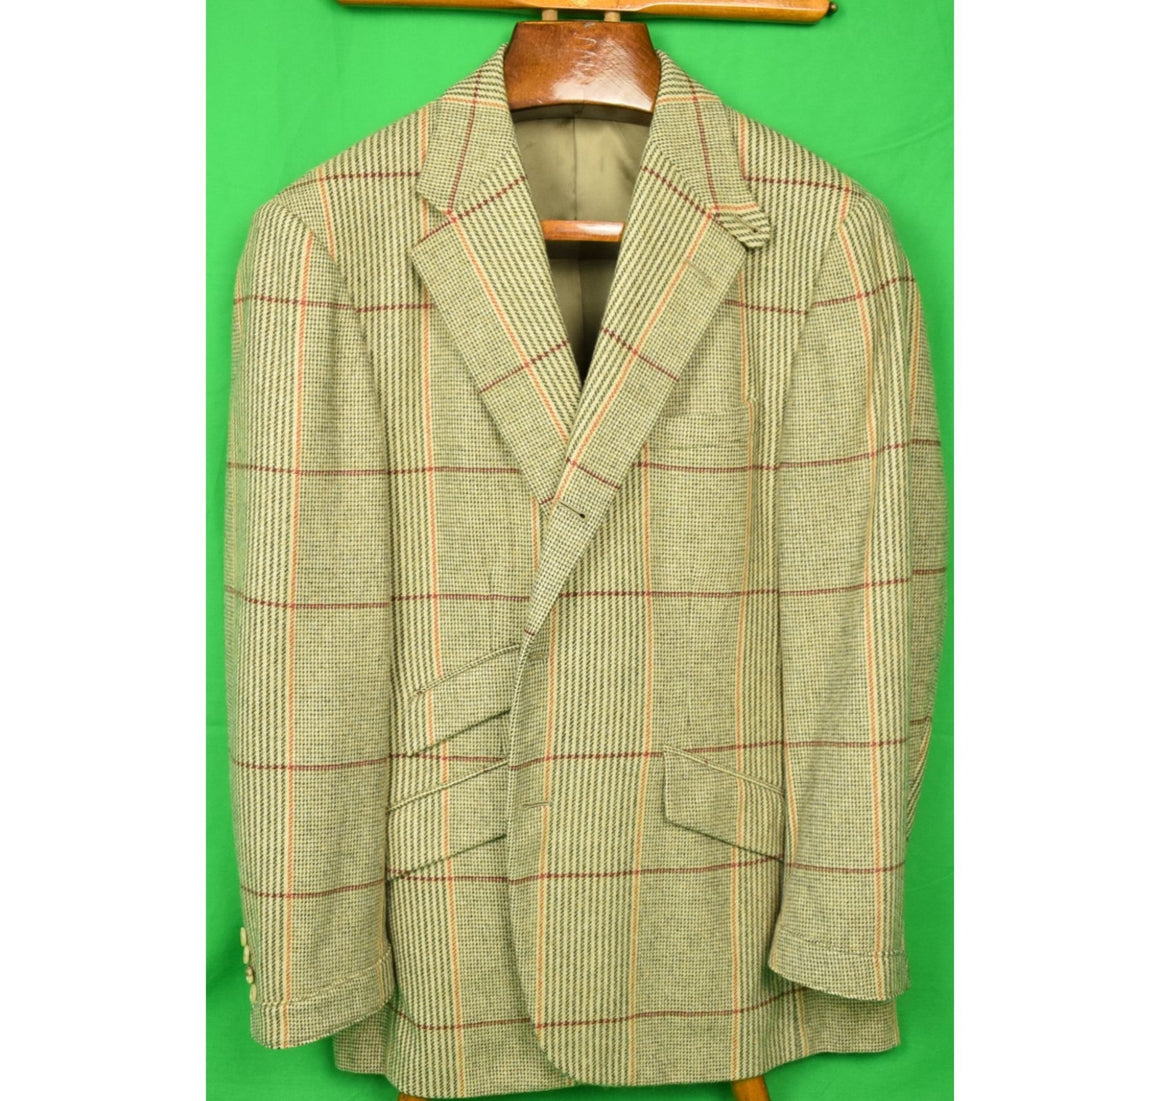 Ralph Lauren Purple Label English Russell Plaid Cashmere Jacket Sz 41R